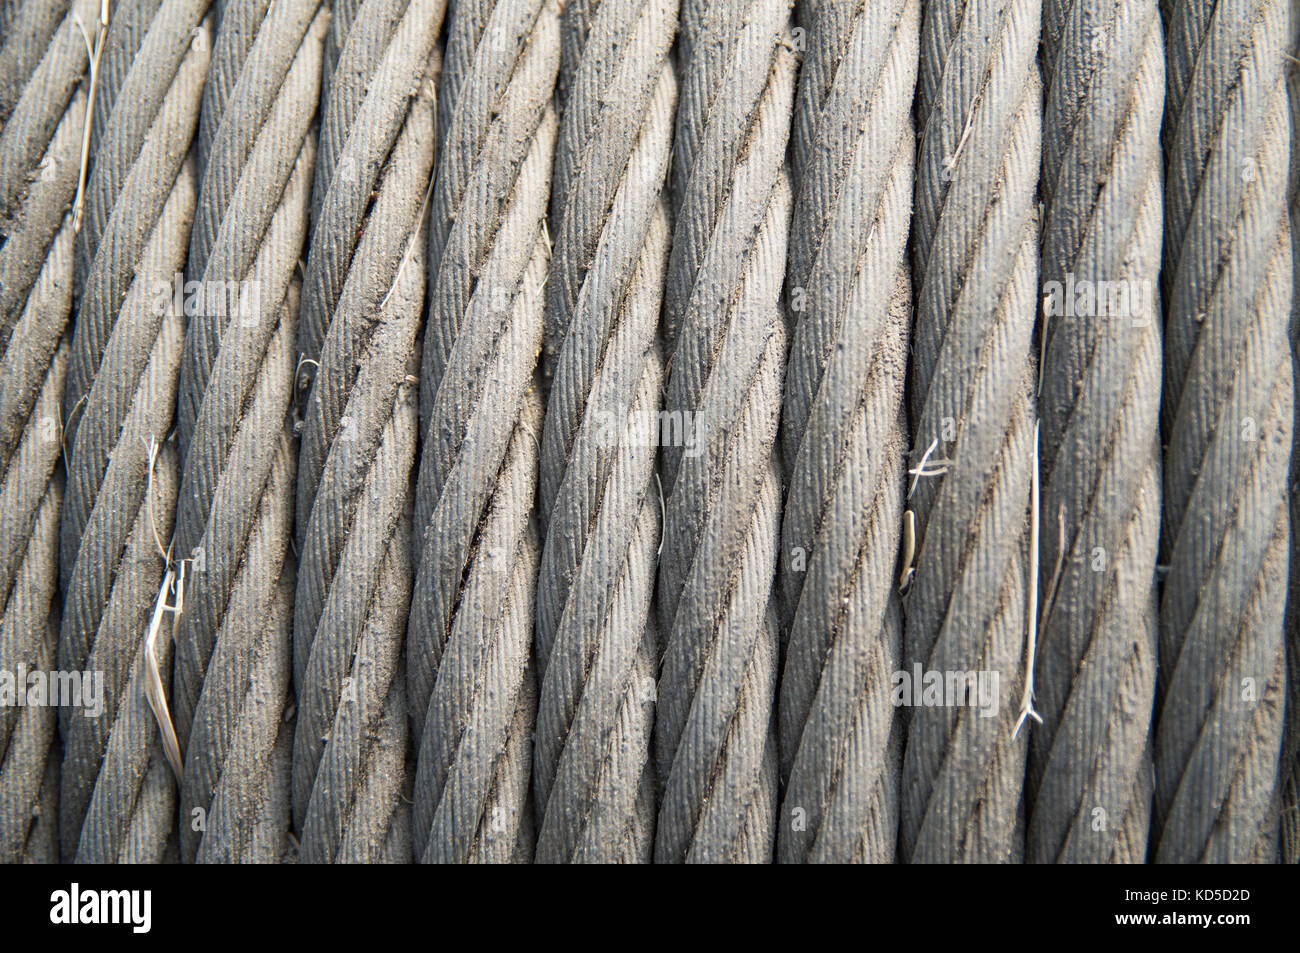 Texture Wire Rope Steel Cable Stockfotos & Texture Wire Rope Steel ...